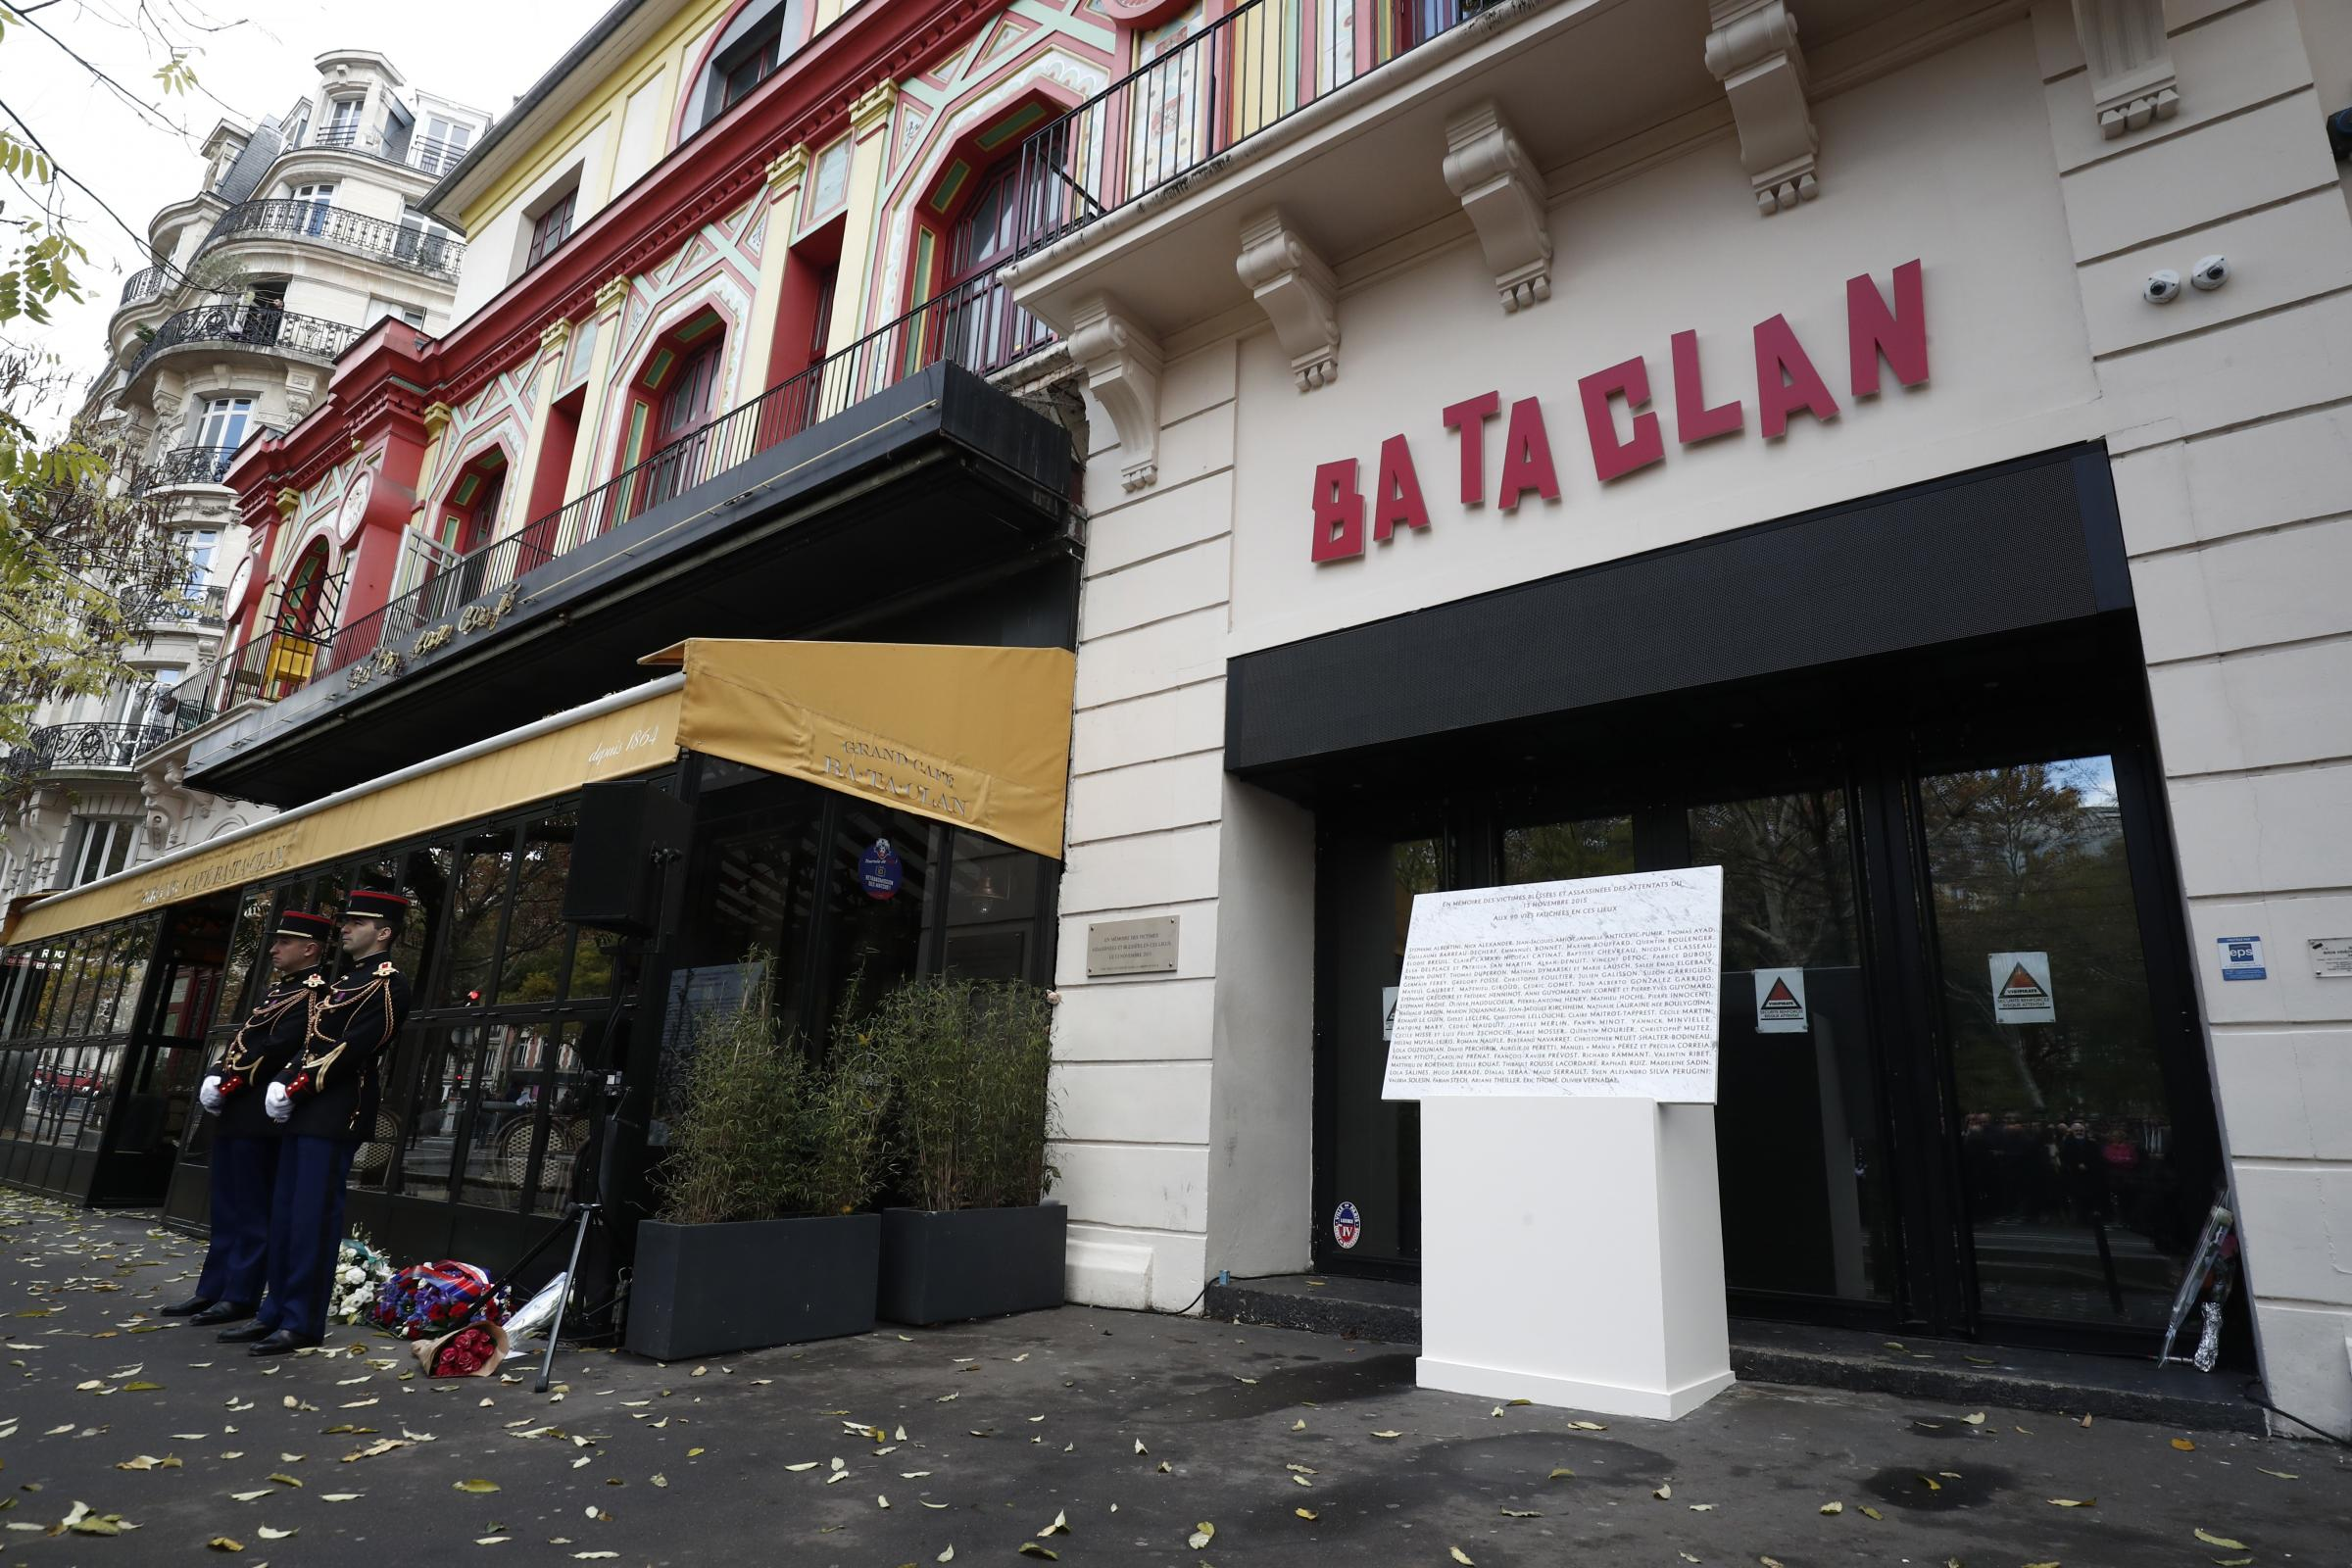 Six terror attacks thwarted by security forces in France this year